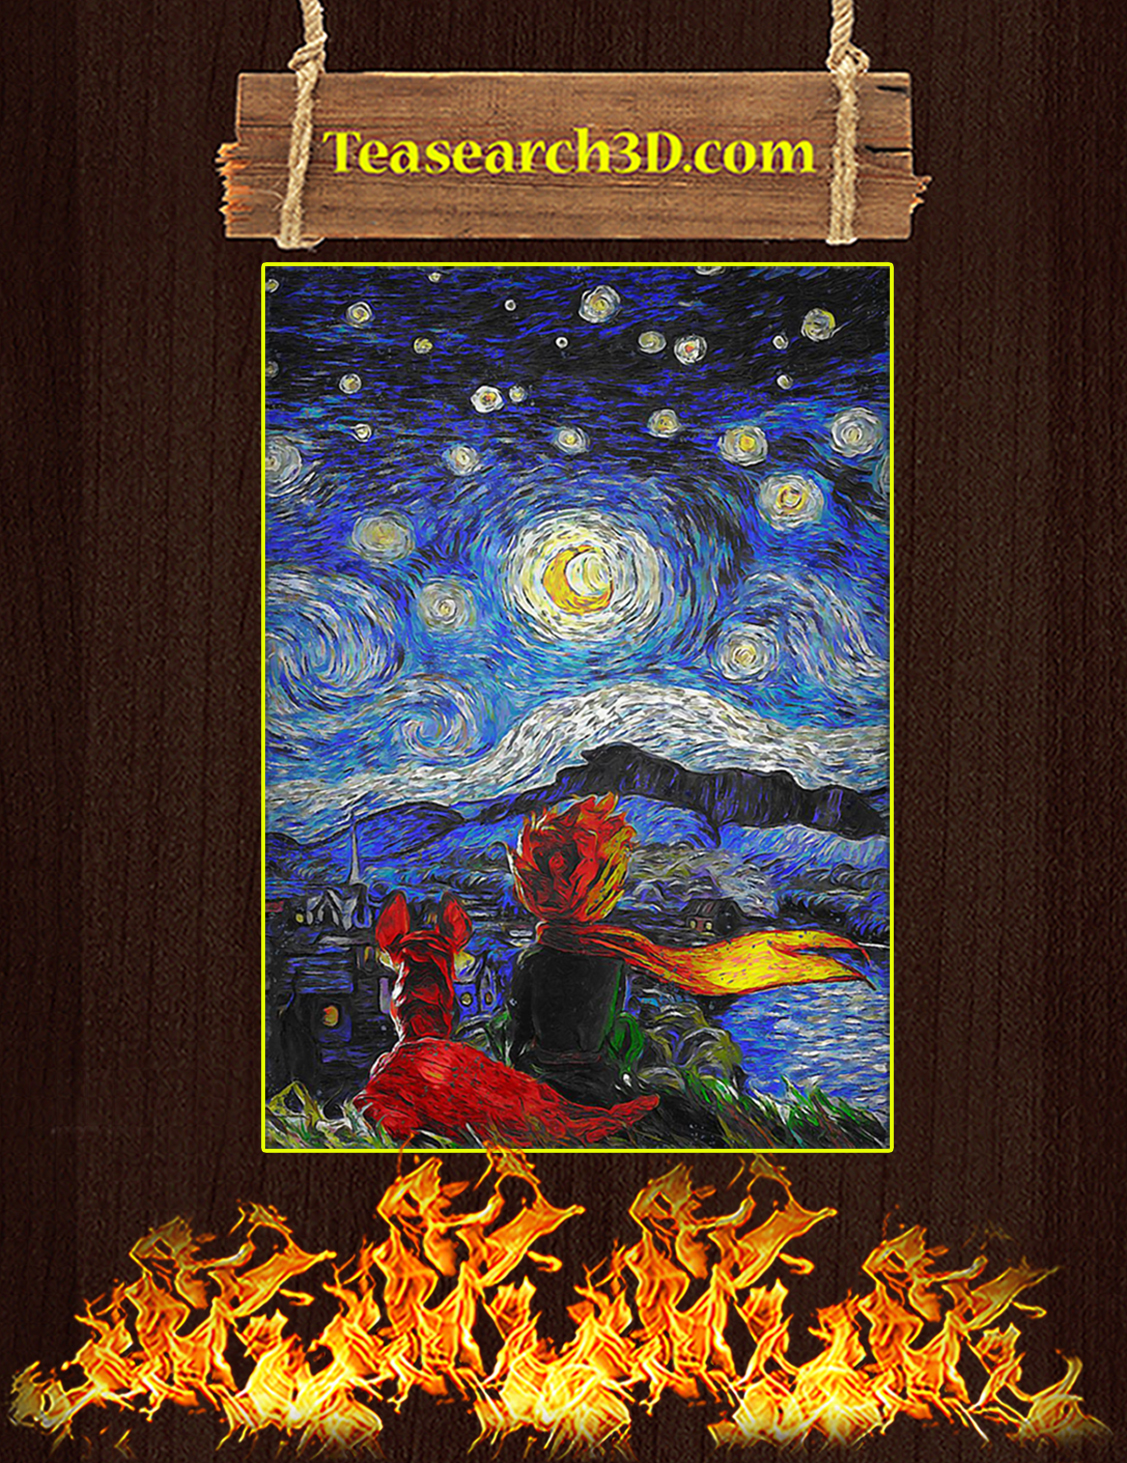 Little prince and fox starry night van gogh poster A3